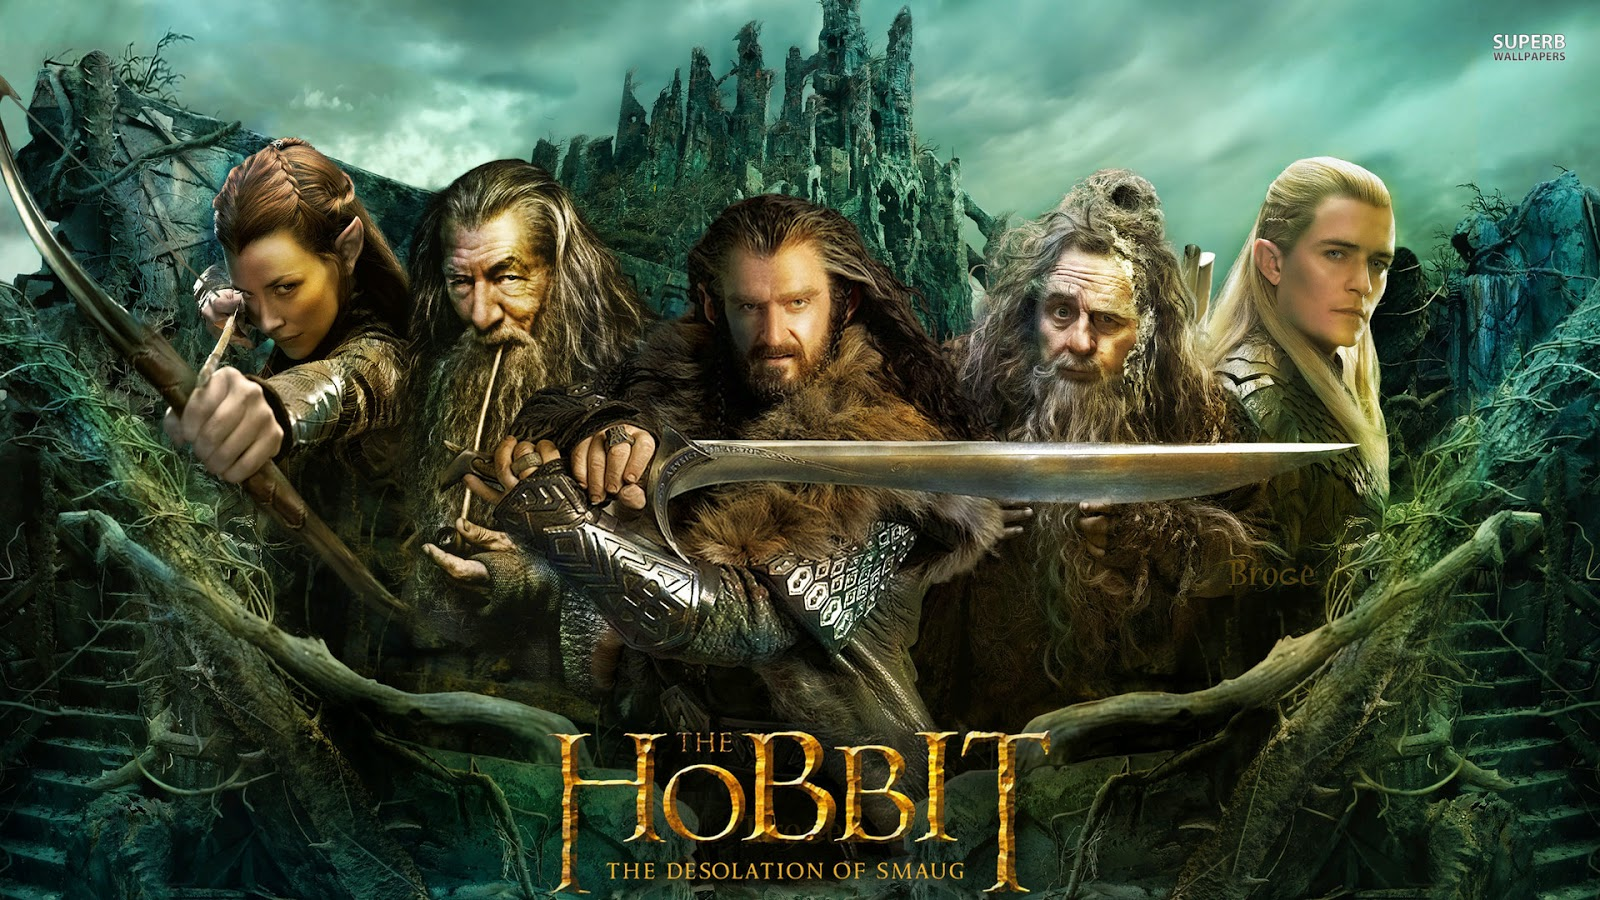 Download The Hobbit The Desolation of Smaug (2013) BluRay 720p